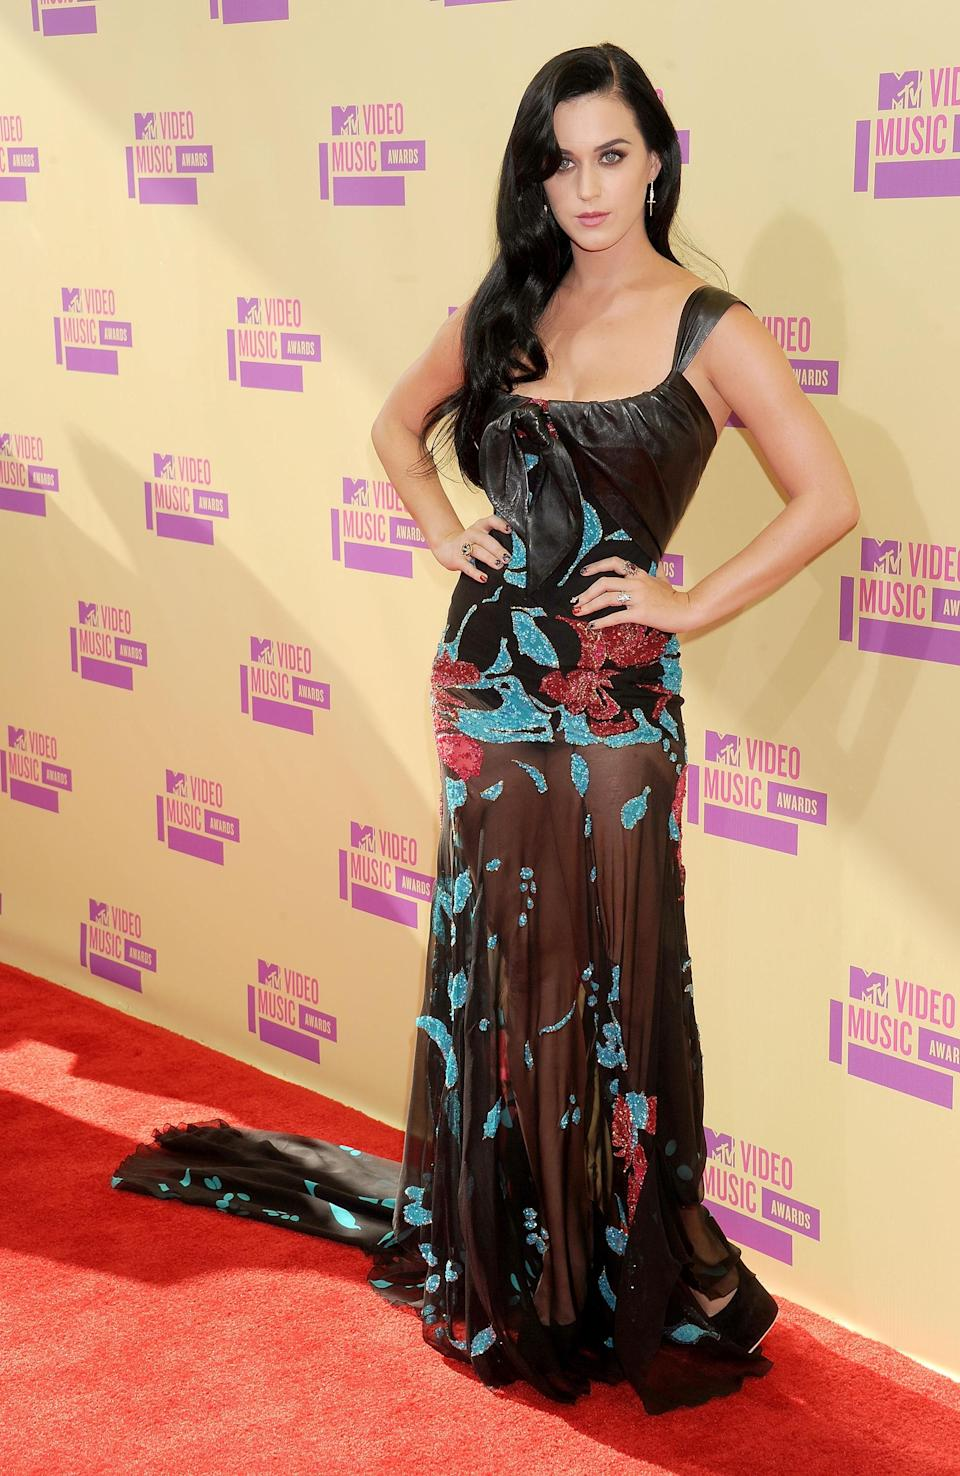 Katy Perry can wear veritably anything: be it beauty or fashion. She was subdued here, in a sheer and romantic printed Elie Saab gown.